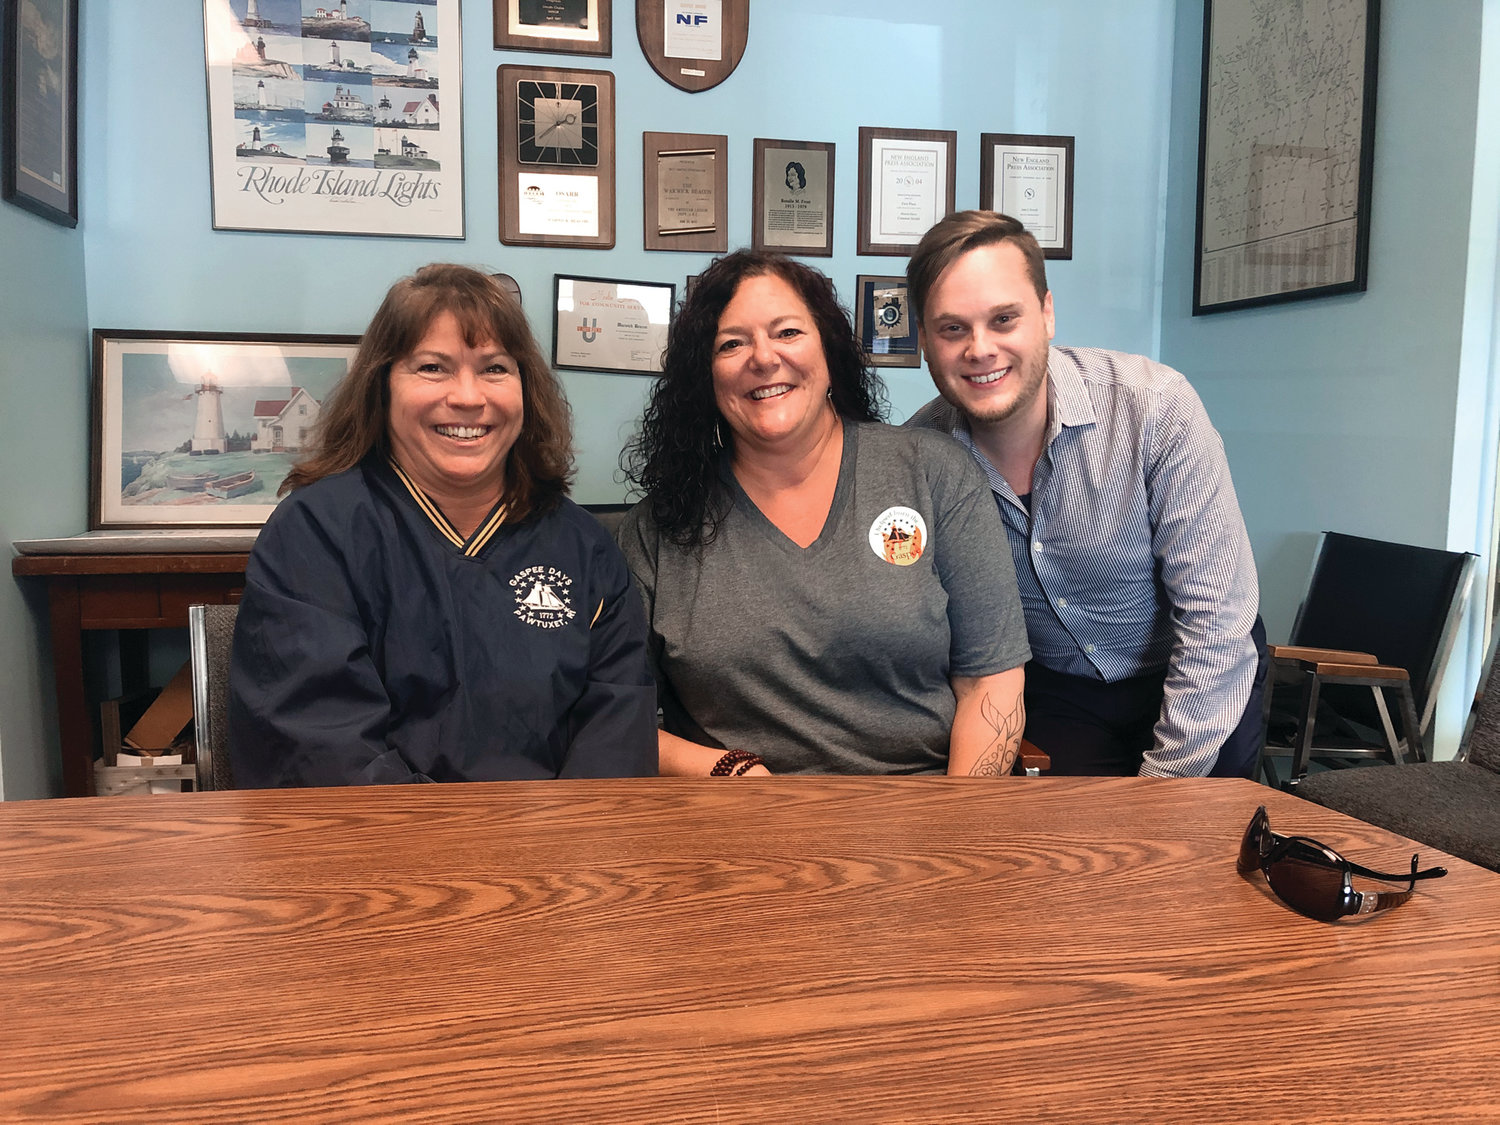 IN THE WORKS: From left to right, Gaspee Days Committee President Gina Dooley, organizer Karen Kenney and past president Ryan Giviens spearheaded the effort to hold the first-ever Gaspee Fall-Out, coming to Pawtuxet Park on Oct. 12 from noon to 5. The event will feature several food vendors, beer tastings and entertainment, all with free admission.